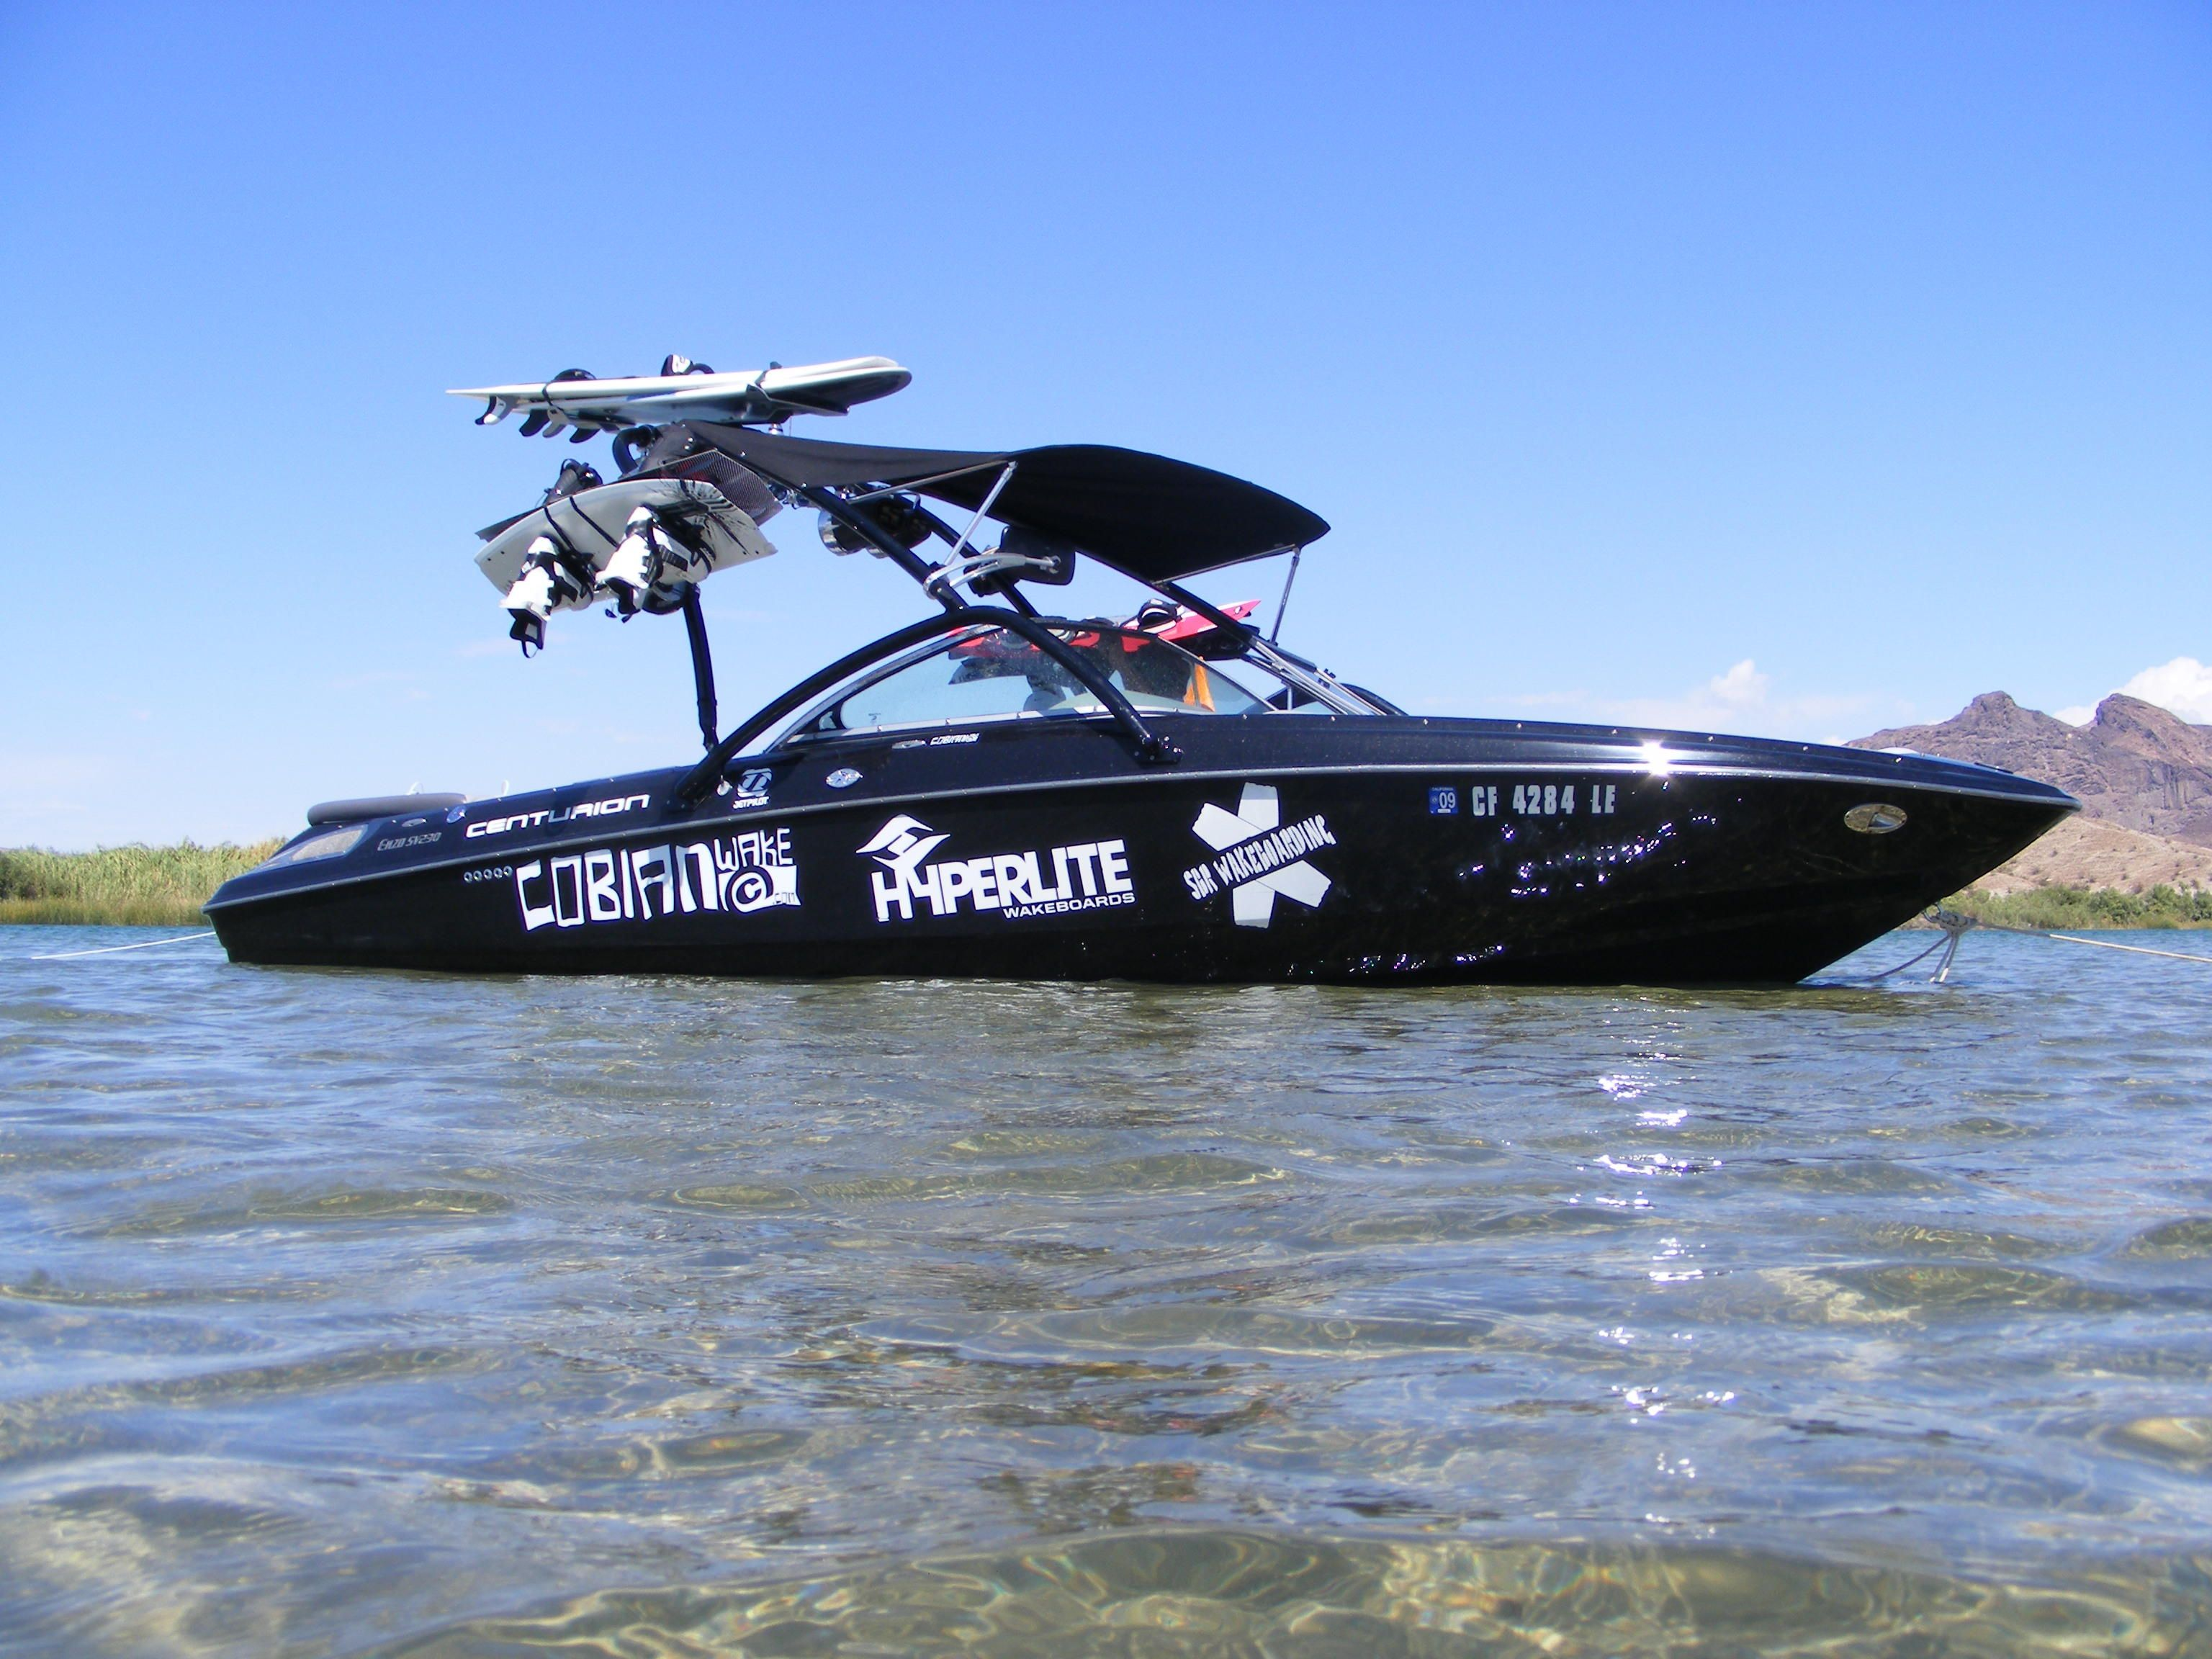 Centurion Wakeboard Boats Ughh Want One So Bad My Big Girl - Sporting boat decalsbest boat wraps custom vinyl images on pinterest boat wraps